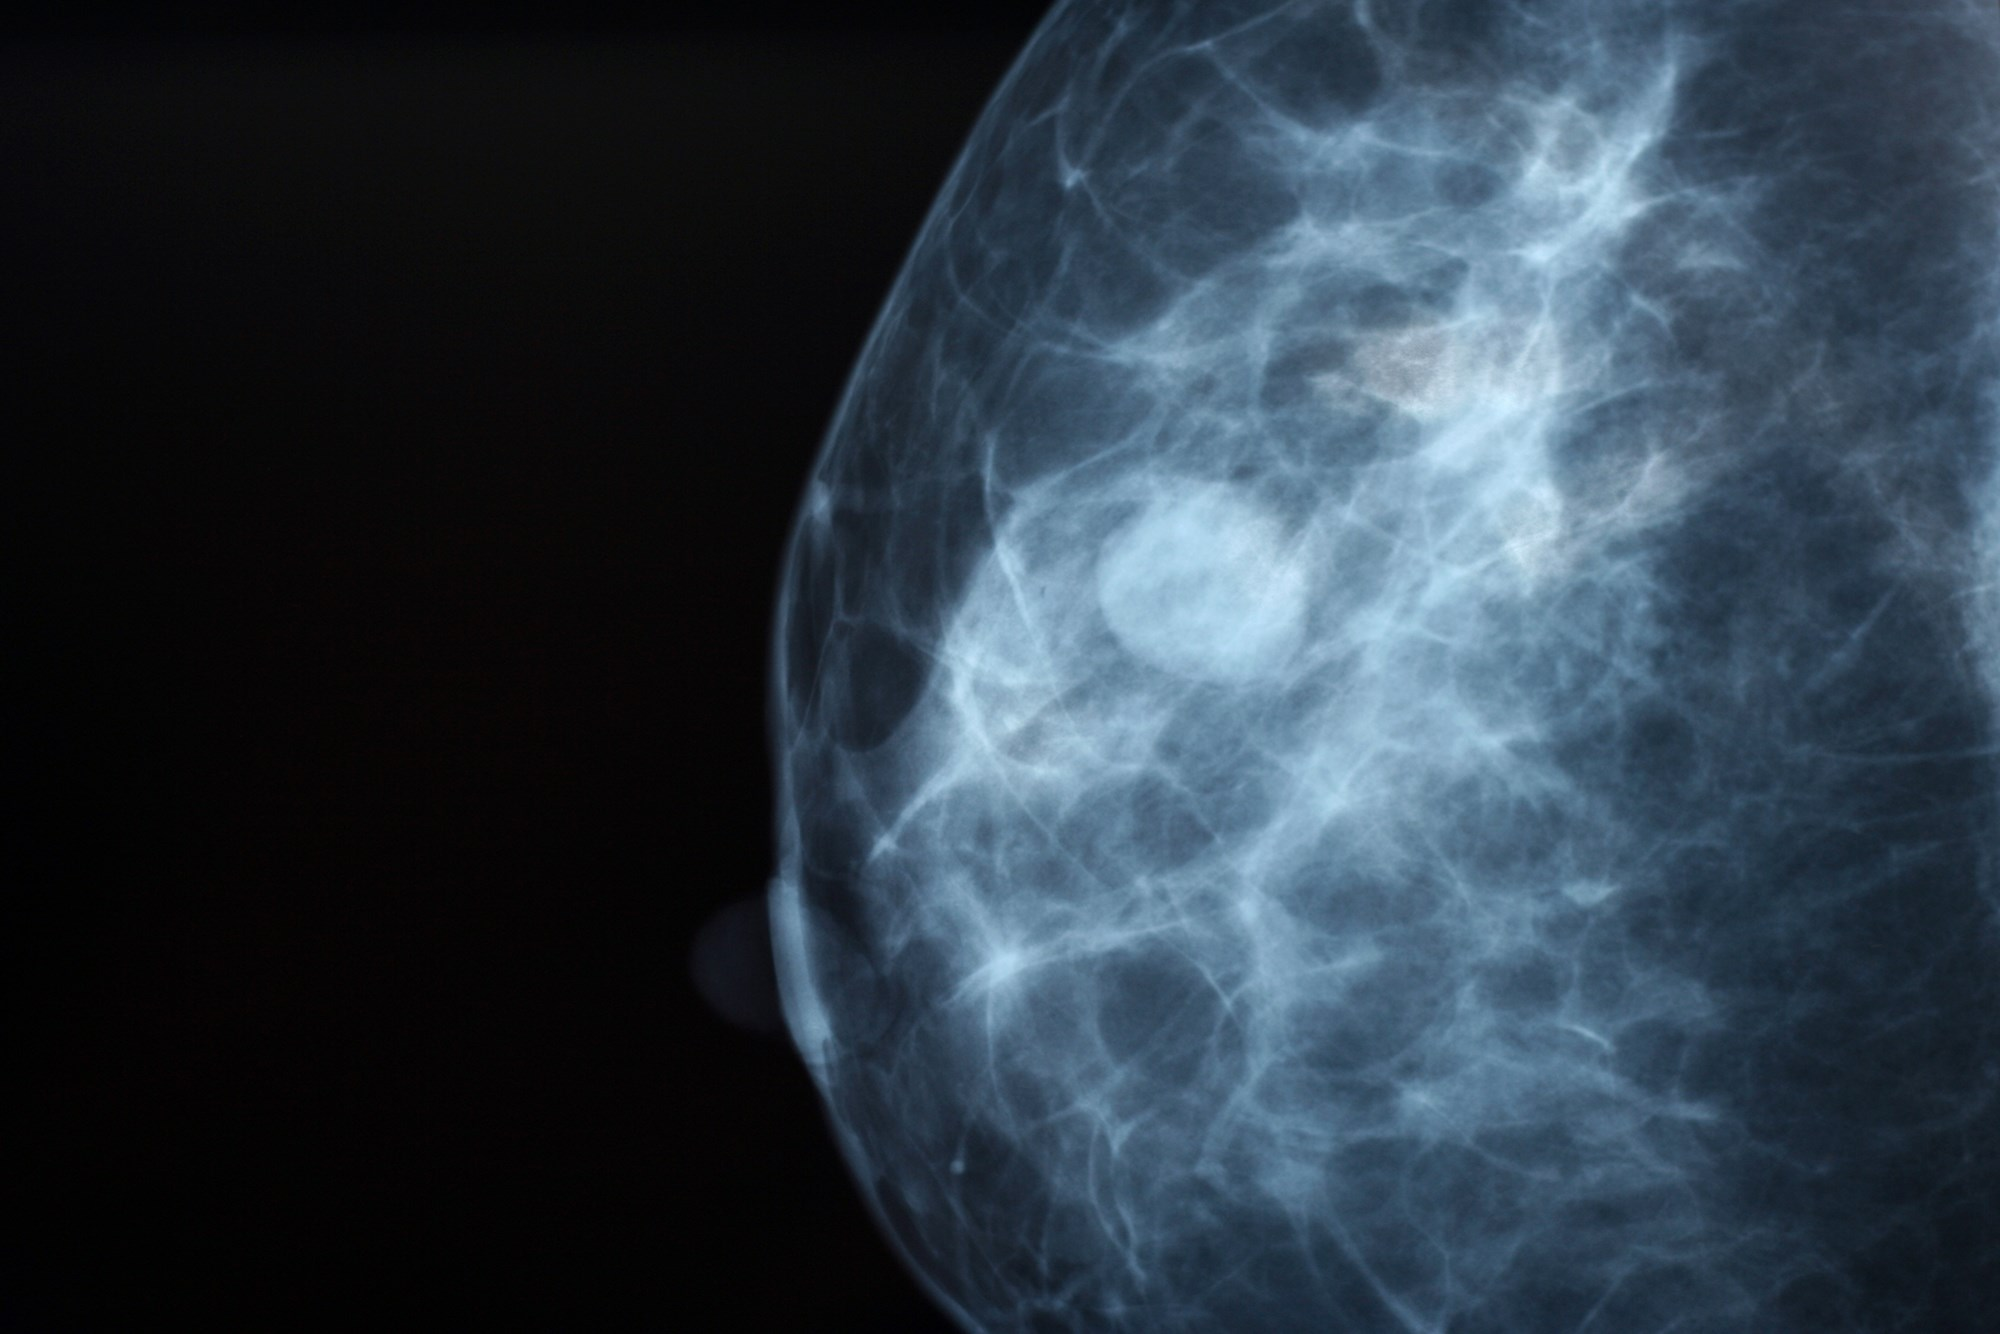 Whether women with dense breast tissue should have additional breast screenings remains unclear.